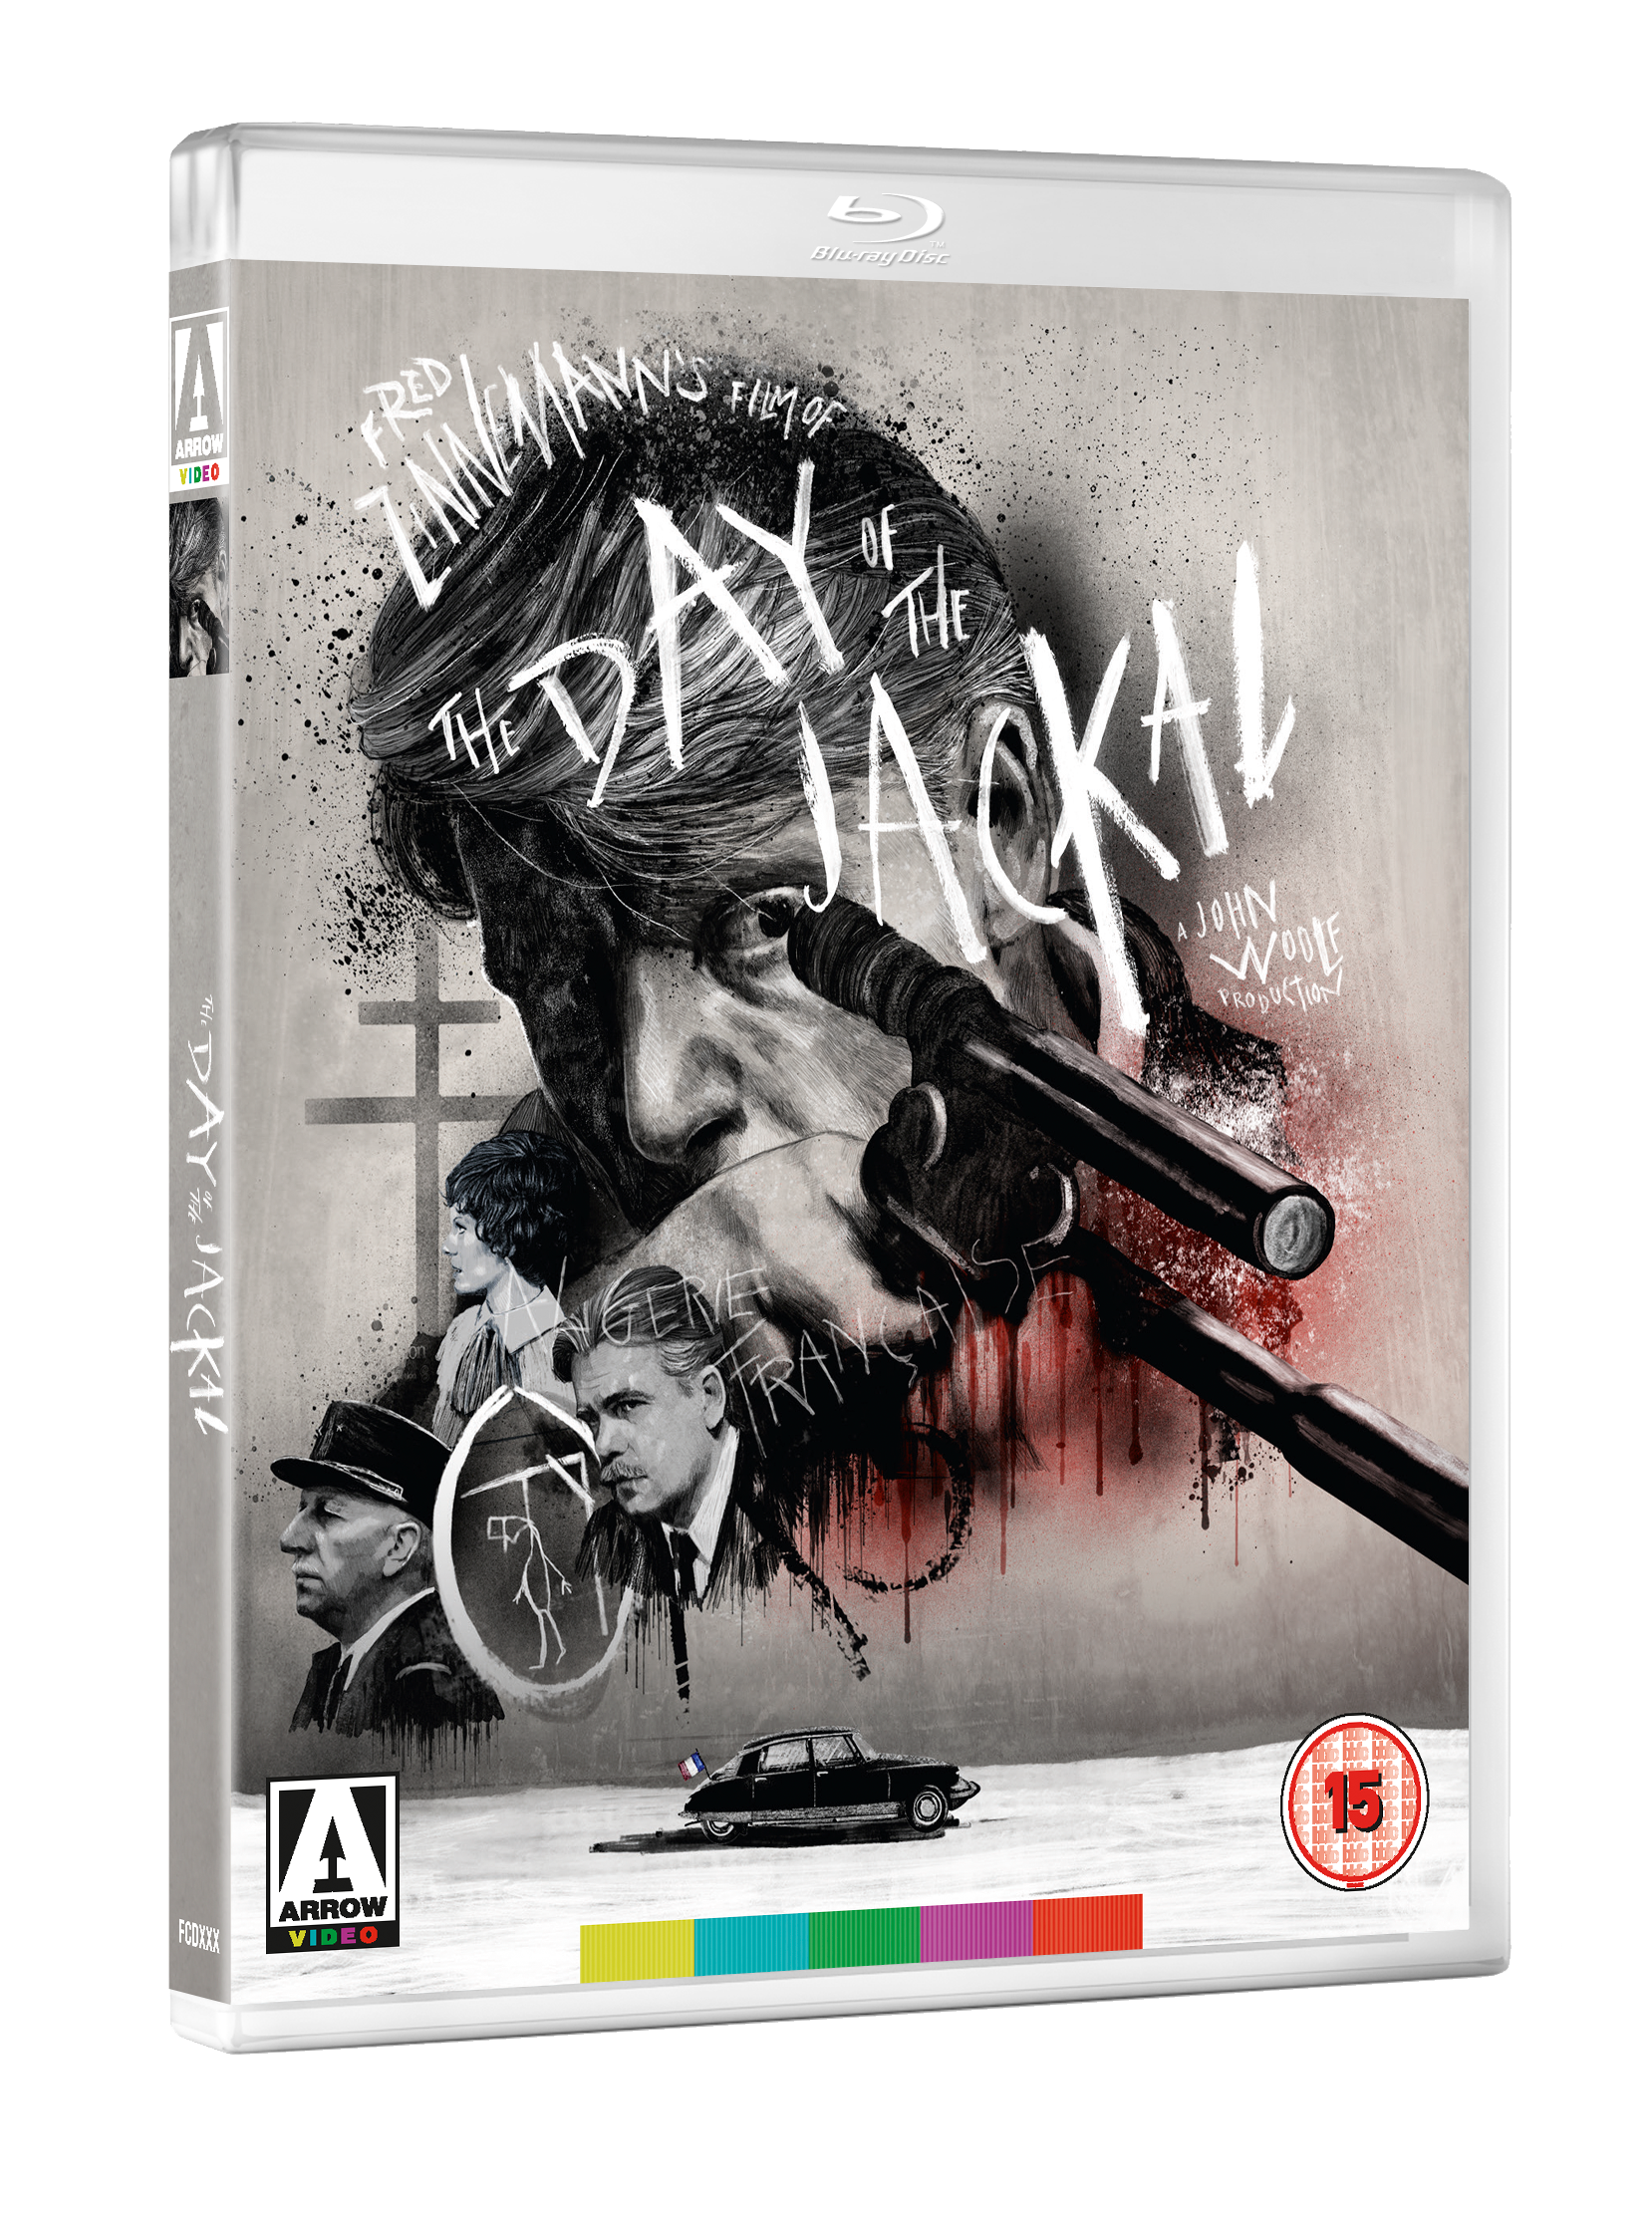 DAY OF THE JACKAL 3D BD September 2017 line up announced by Arrow Video